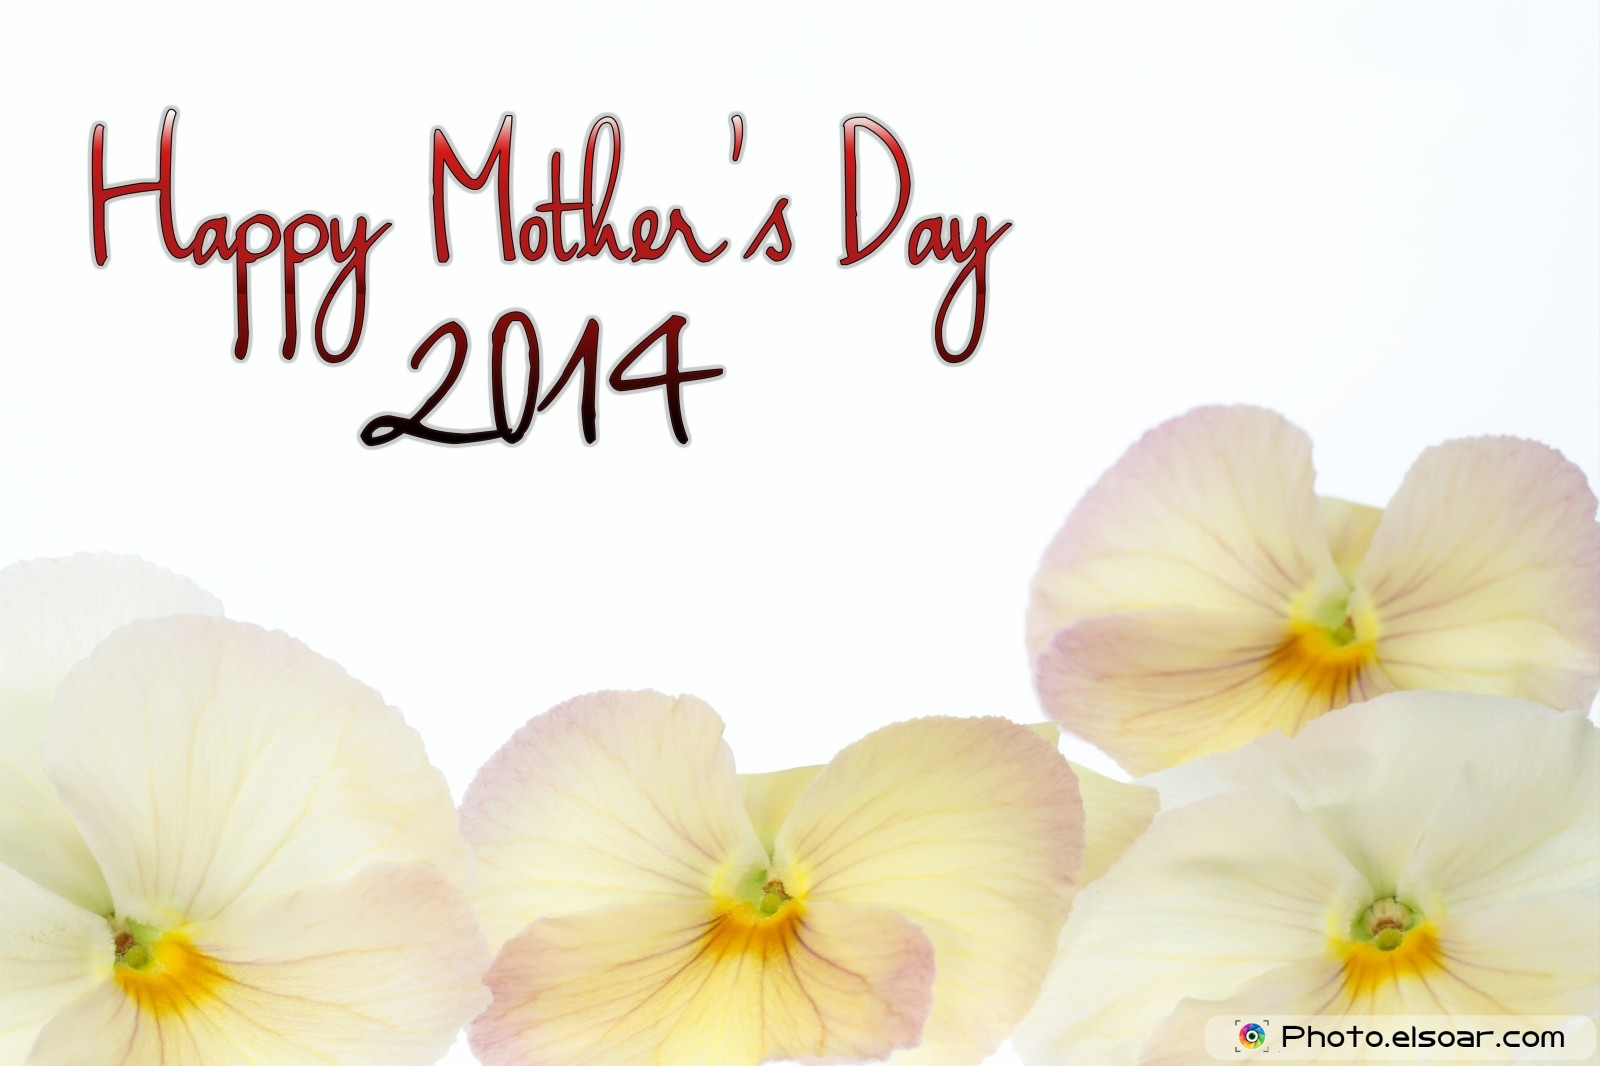 Happy Mothers Day 2014 Card Ideas: New Set# Happy Mother's Day 2014 Greeting Cards & Images